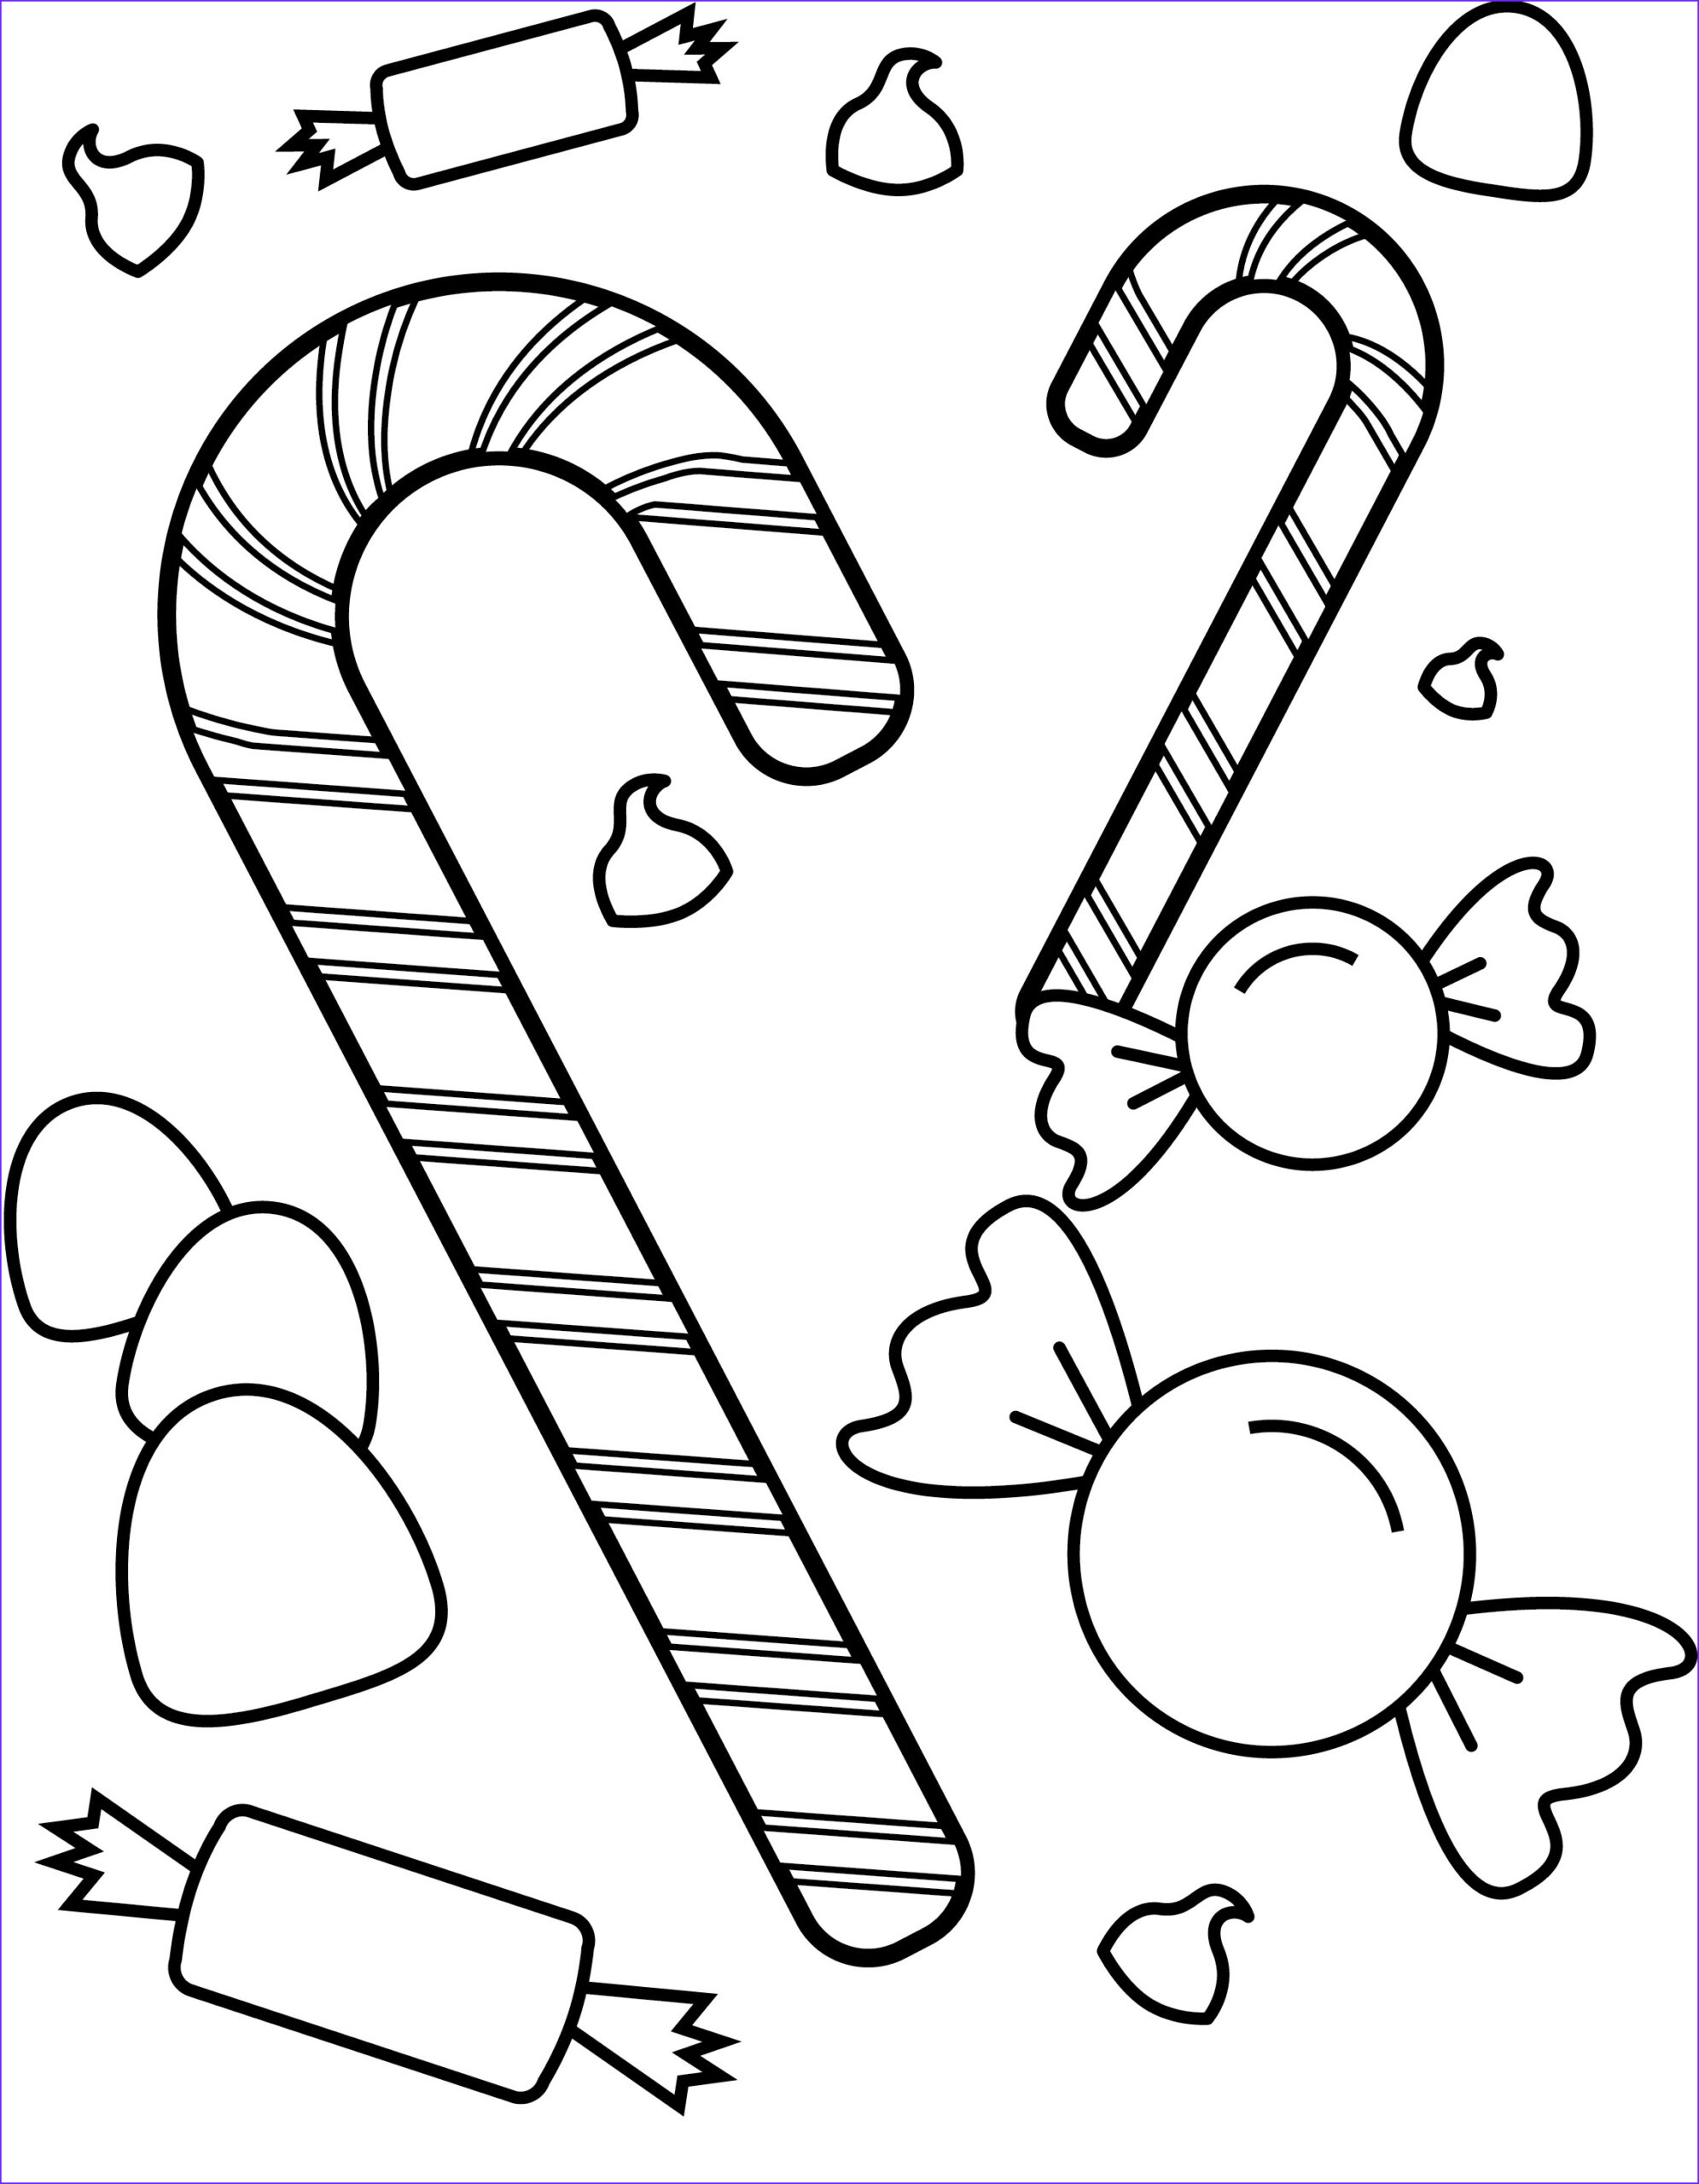 Candy Coloring New Collection Free Printable Candy Coloring Pages for Kids